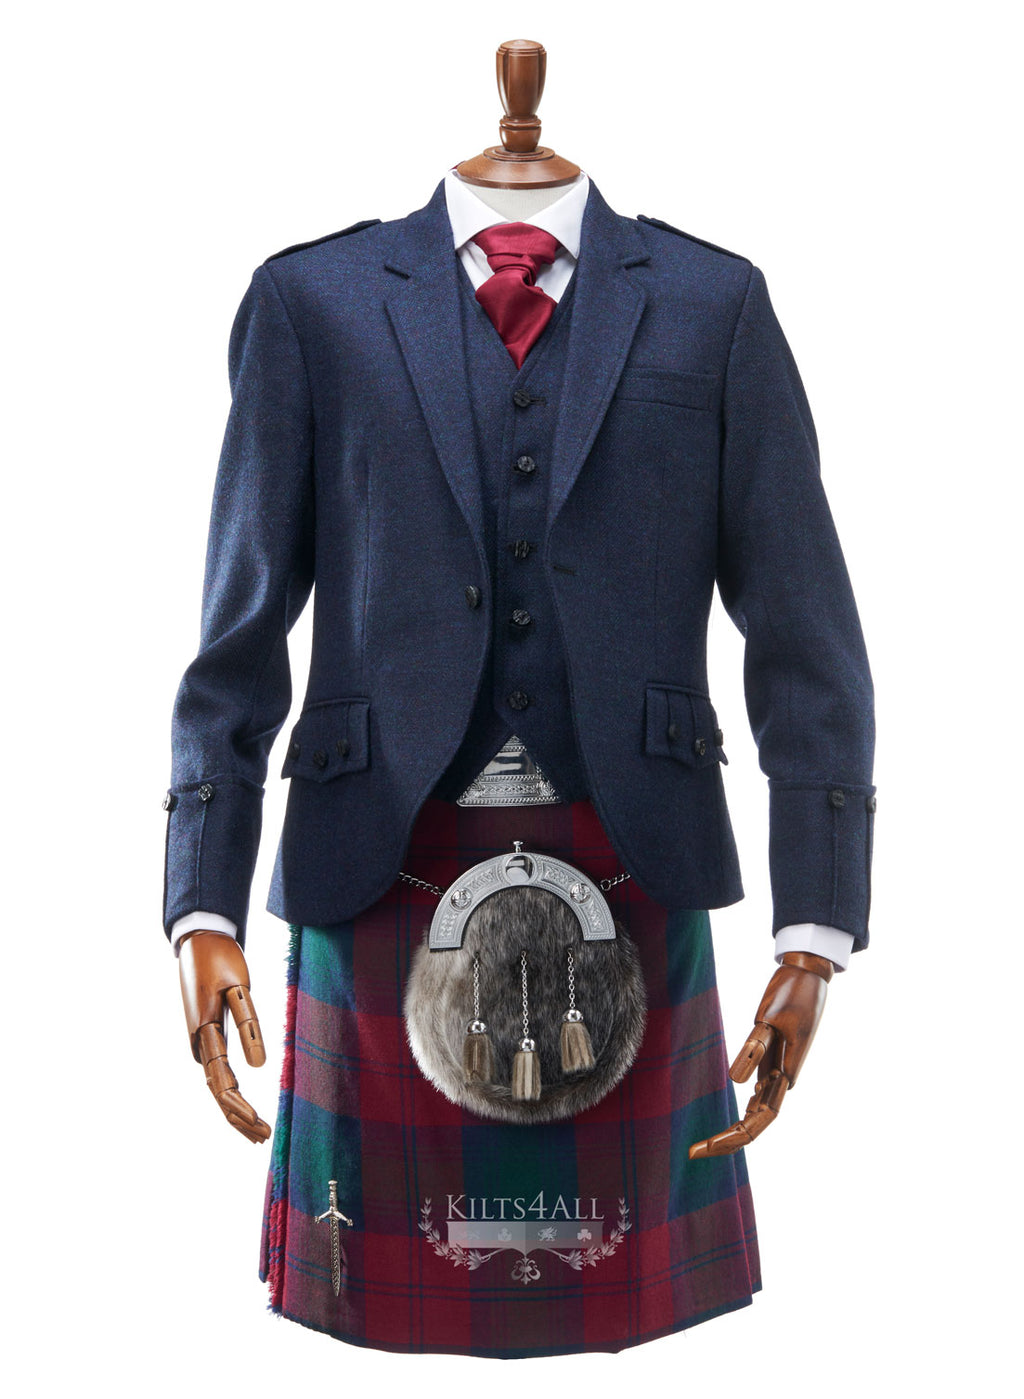 Mens Welsh National Tartan Kilt Outfit to Hire - Lightweight Navy Tweed Argyll Jacket & Waistcoat